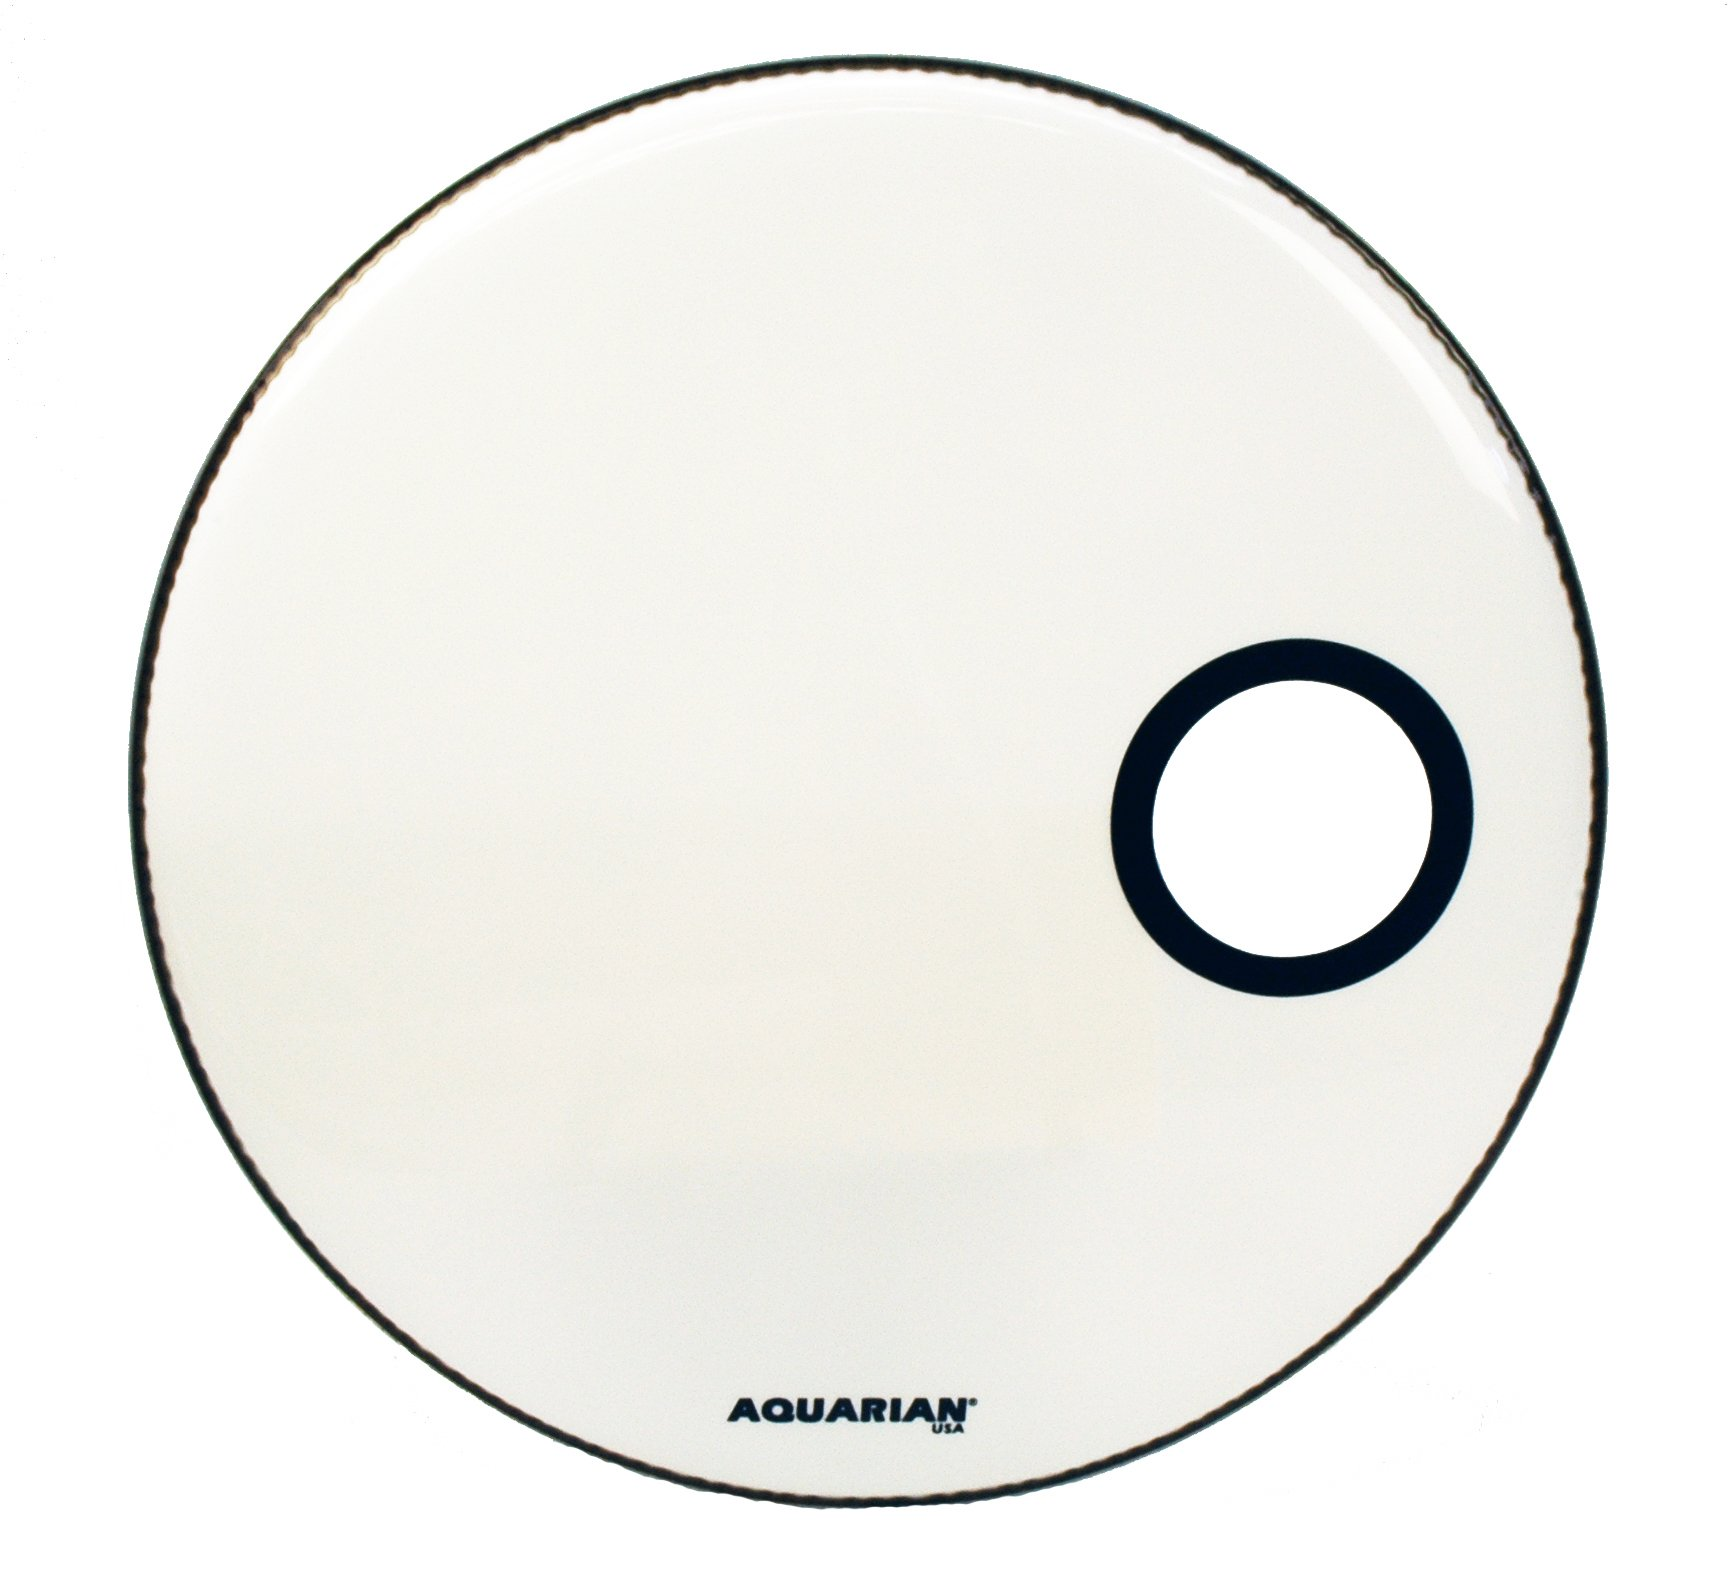 Aquarian Drumheads SMPTCC24WH Offset Ported Bass 24-inch Bass Drum Head, goss white